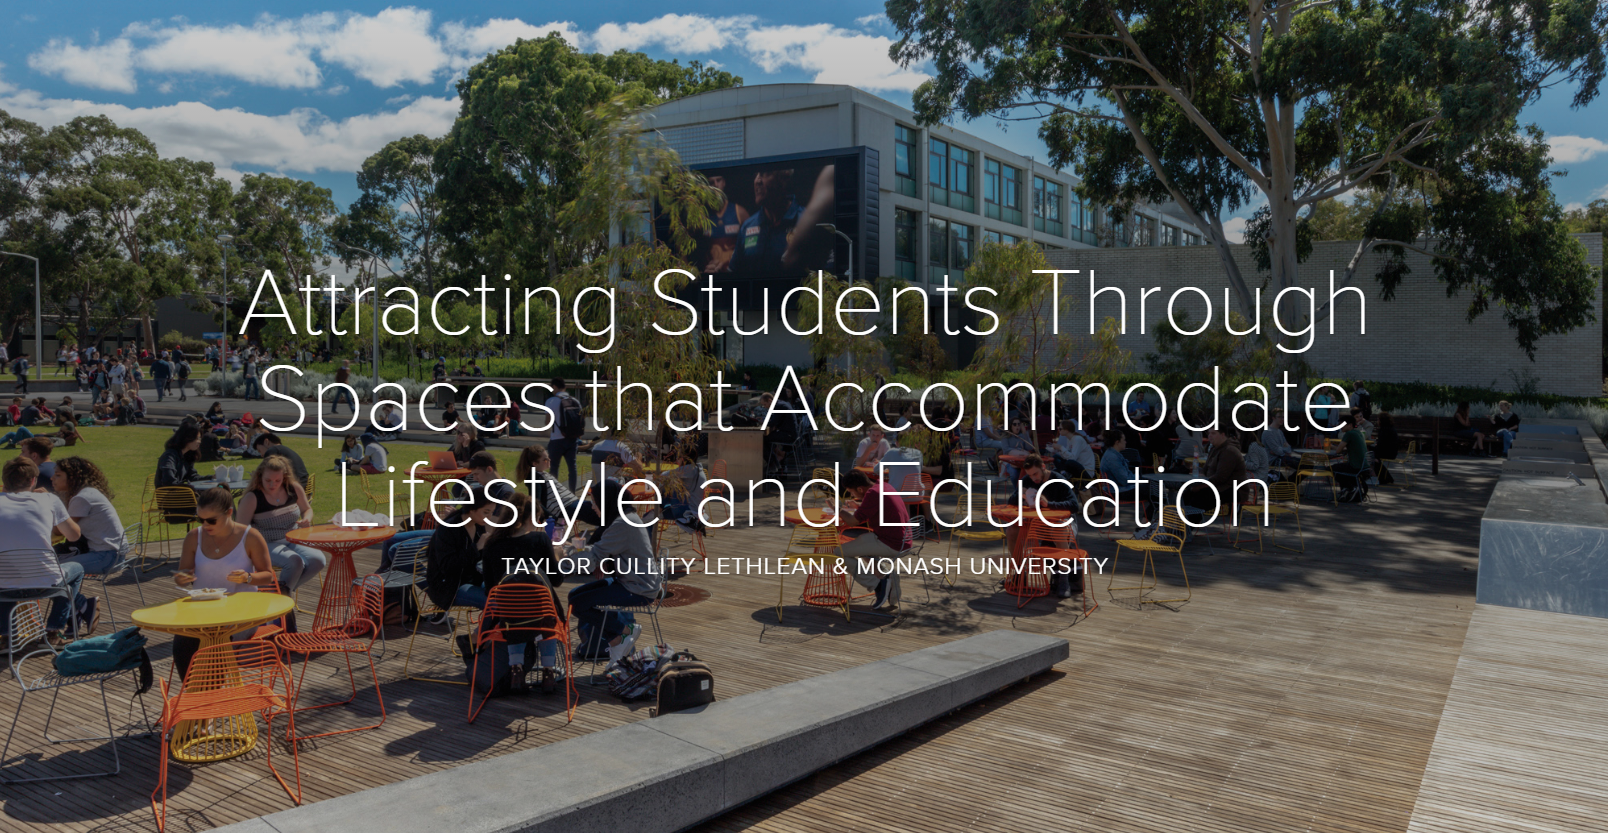 Attracting Students Through Spaces that Accommodate Lifestyle and Education